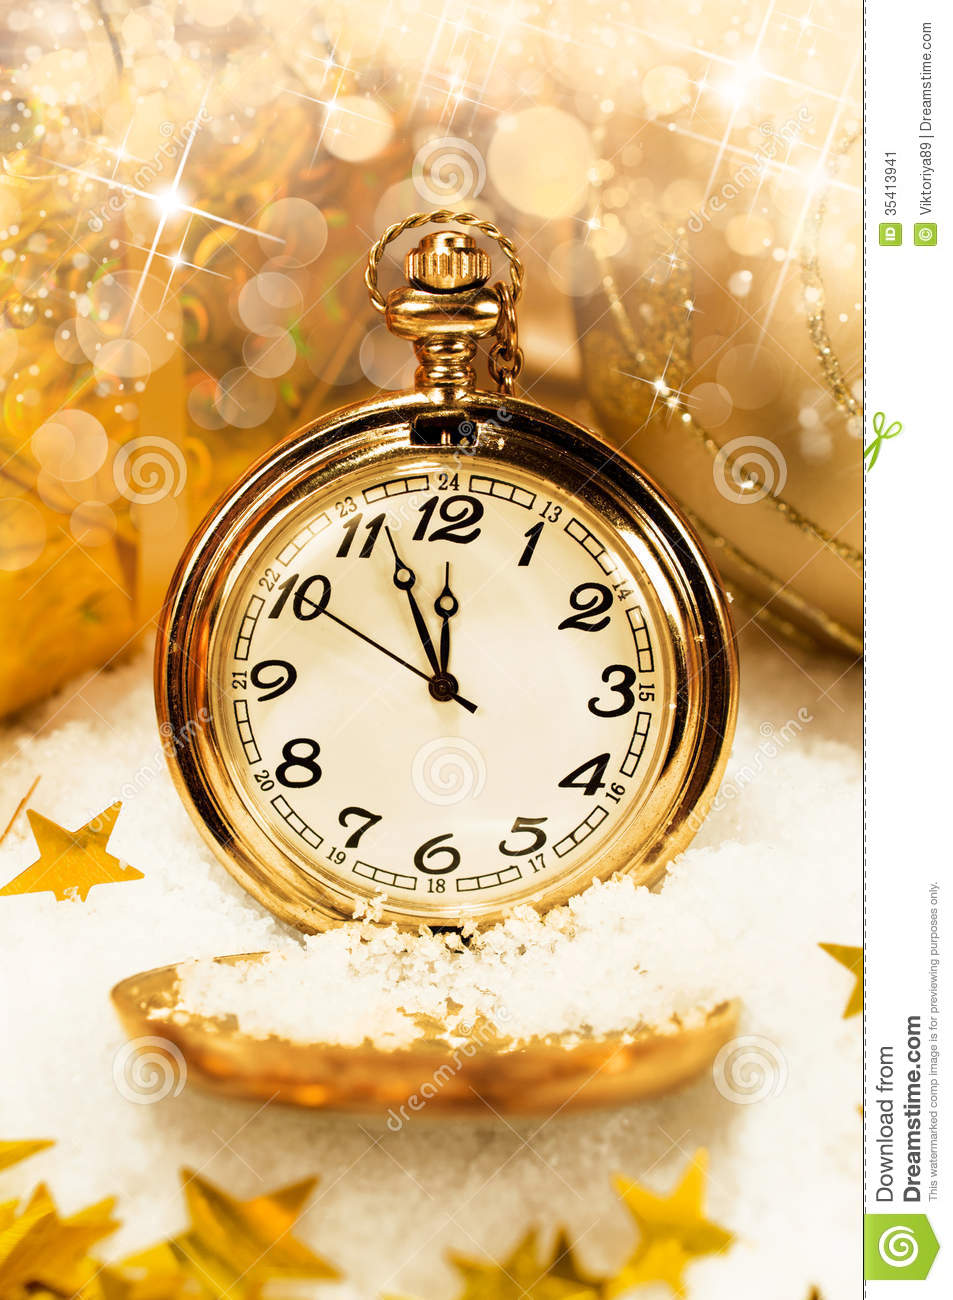 Pocket Watch Showing Five Minutes To Midnight Stock Image